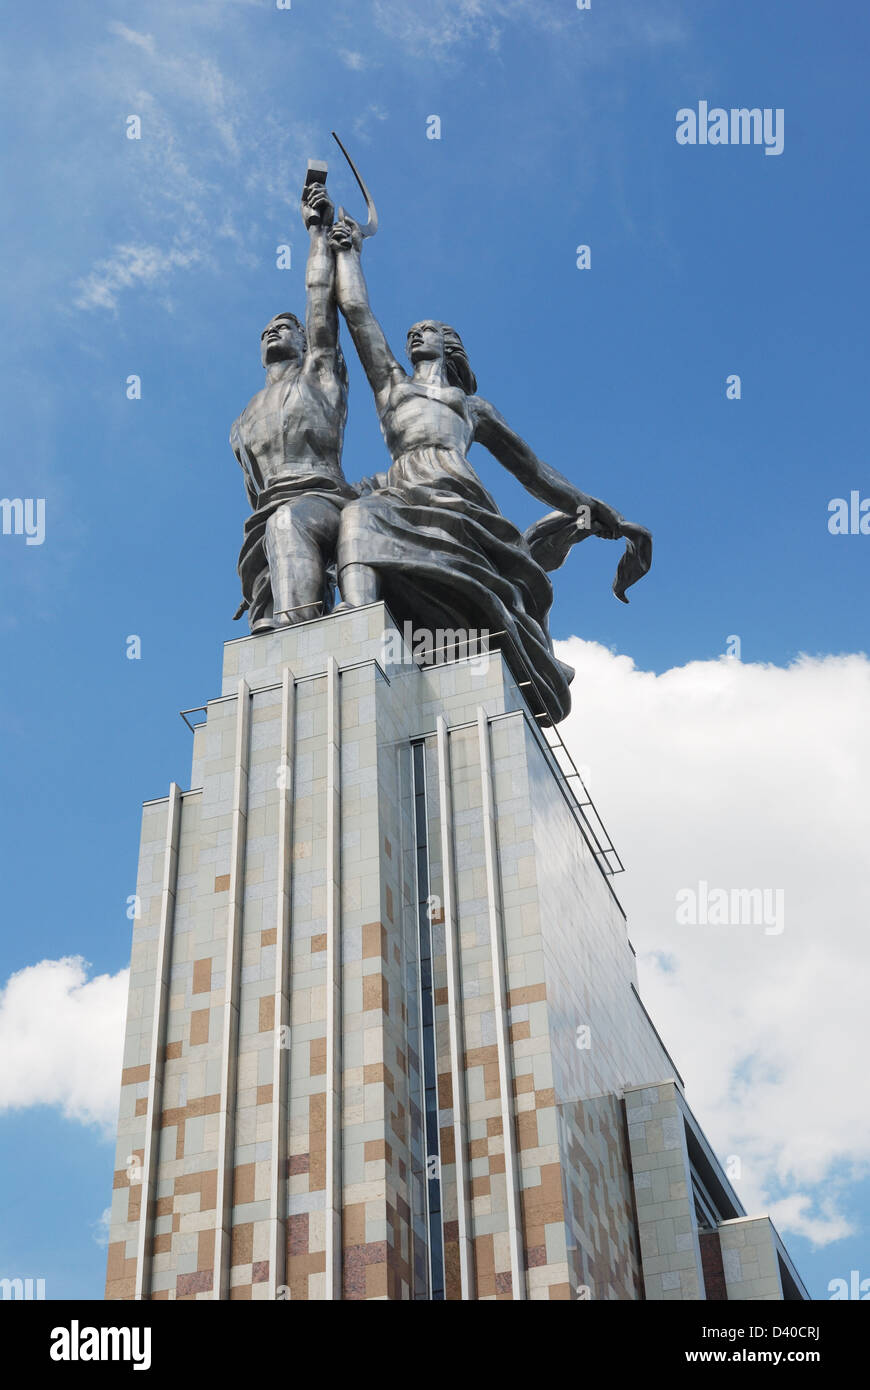 Worker and Kolkhoz Woman - very famous Soviet monument made by Vera Mukhina in 1937 - Stock Image